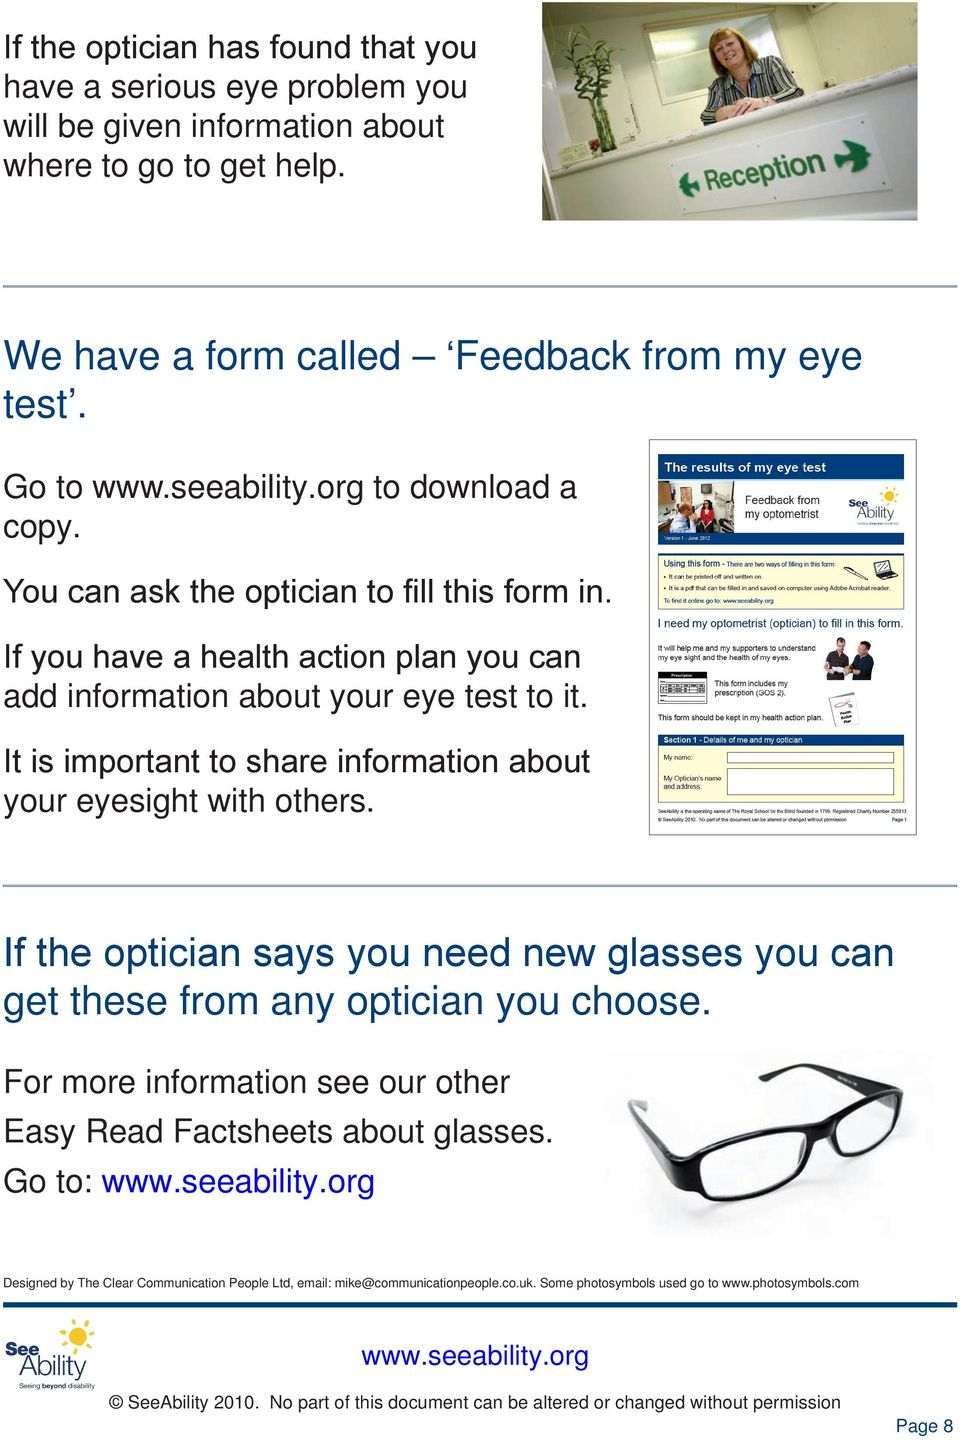 It is important to share information about your eyesight with others. If the optician says you need new glasses you can get these from any optician you choose.